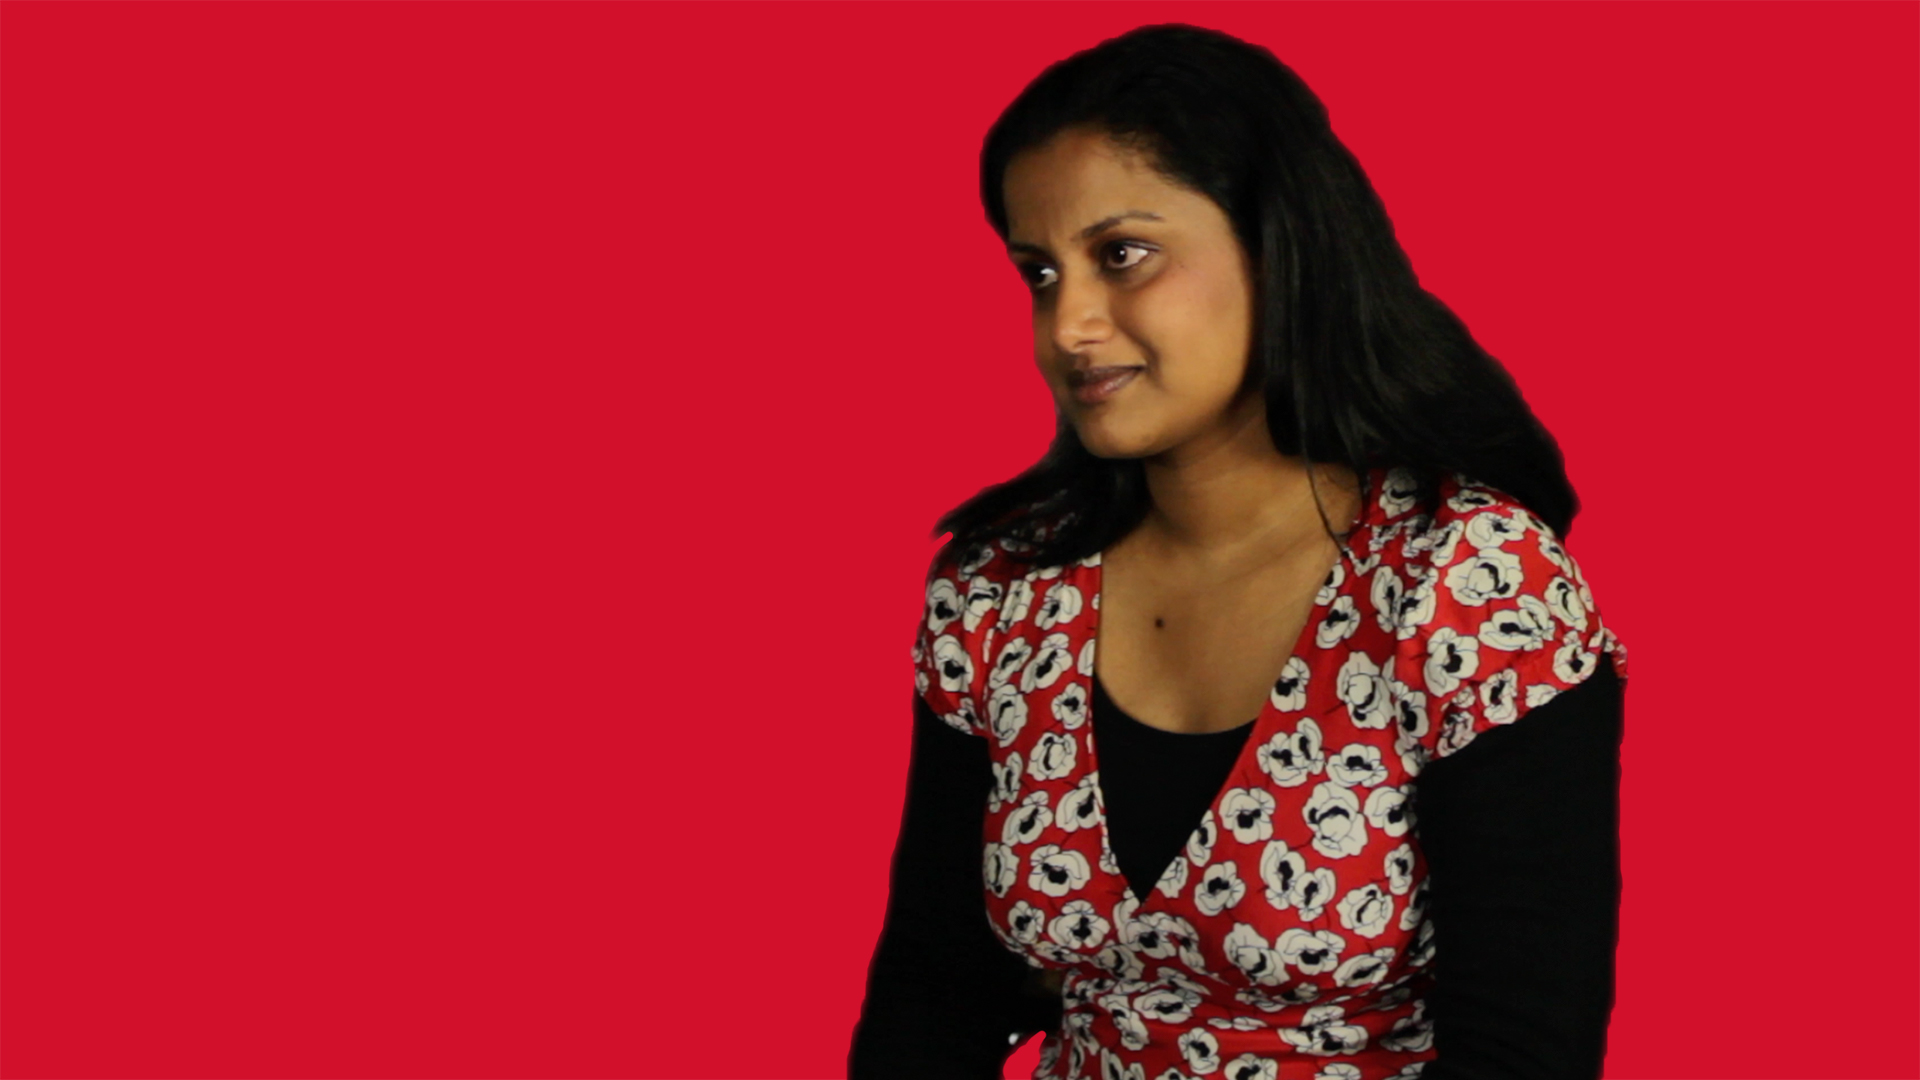 People who knew me probably thought I already was a Christian – Aarthi's story*http://media.1847.churchinsight.com.s3.amazonaws.com/2284f2b7-a1f6-43d1-8eb0-3794674ae032.mp4*/Articles/469306/Home/CE_ORG/Real_Life_Stories/Transcripts/05_Aarthis_Story.aspx